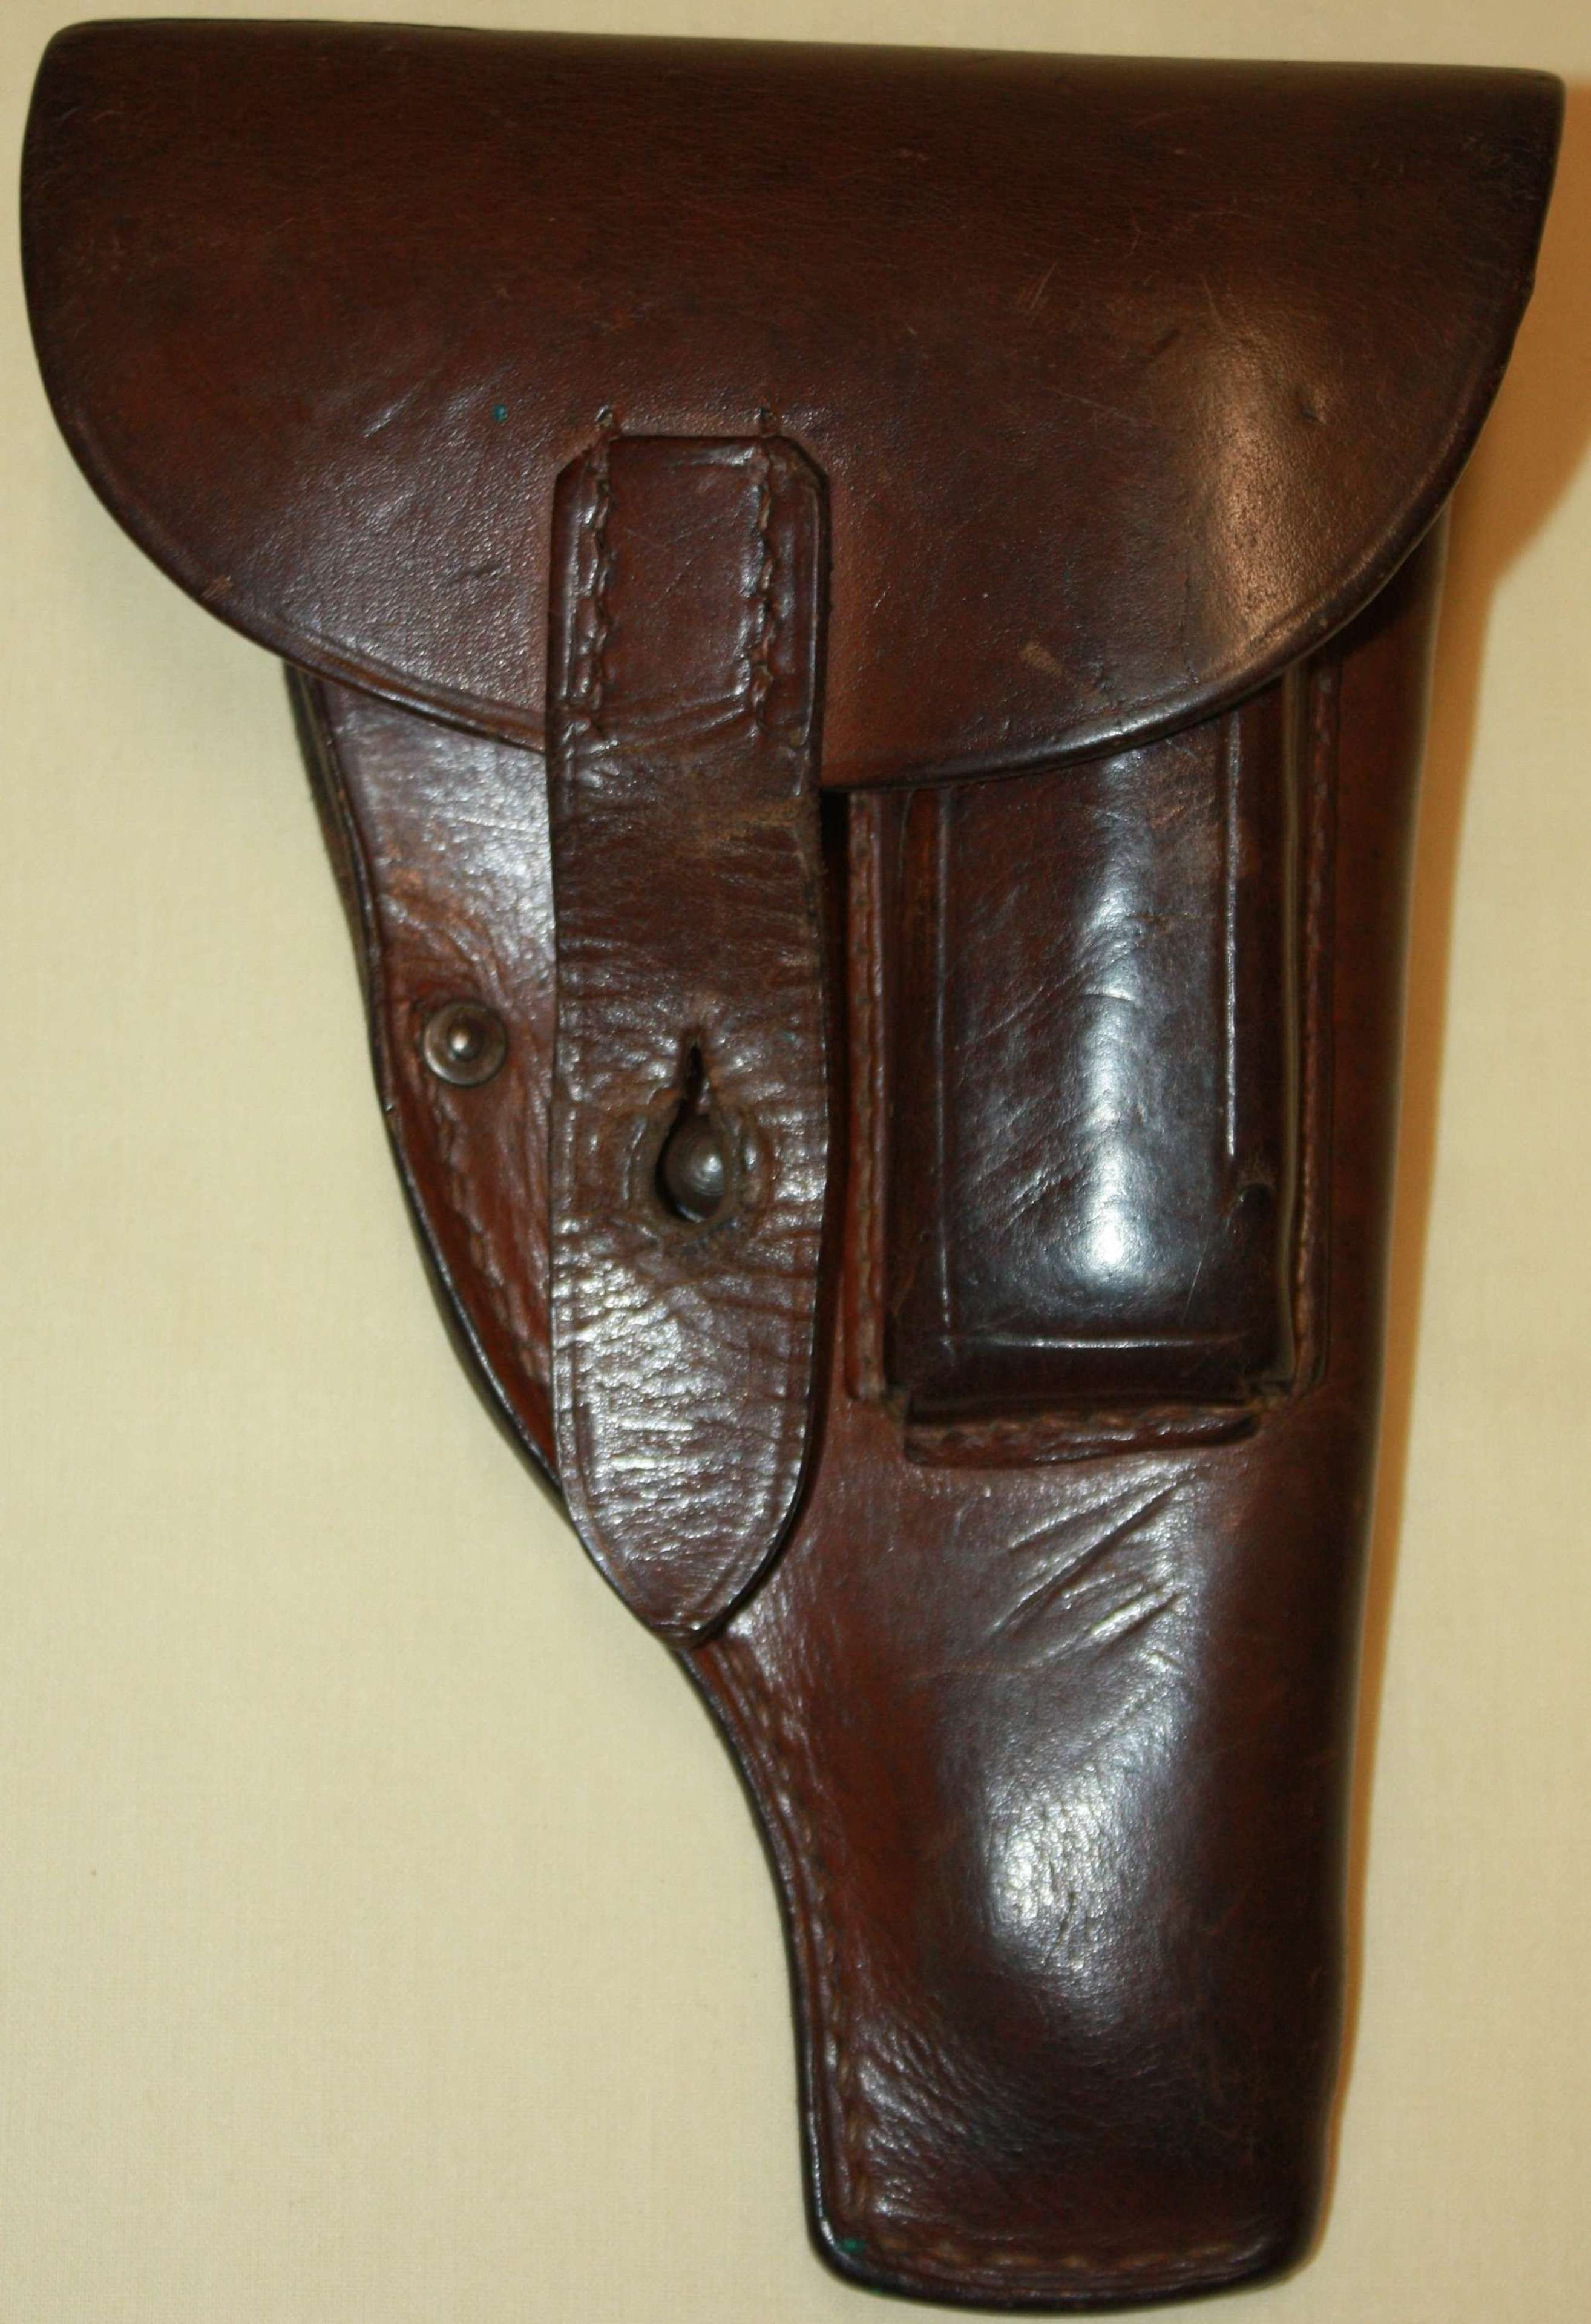 A SCARCE WWI 1918 DATED GERMAN 7.65 CAL PISTOL HOLSTER VGC